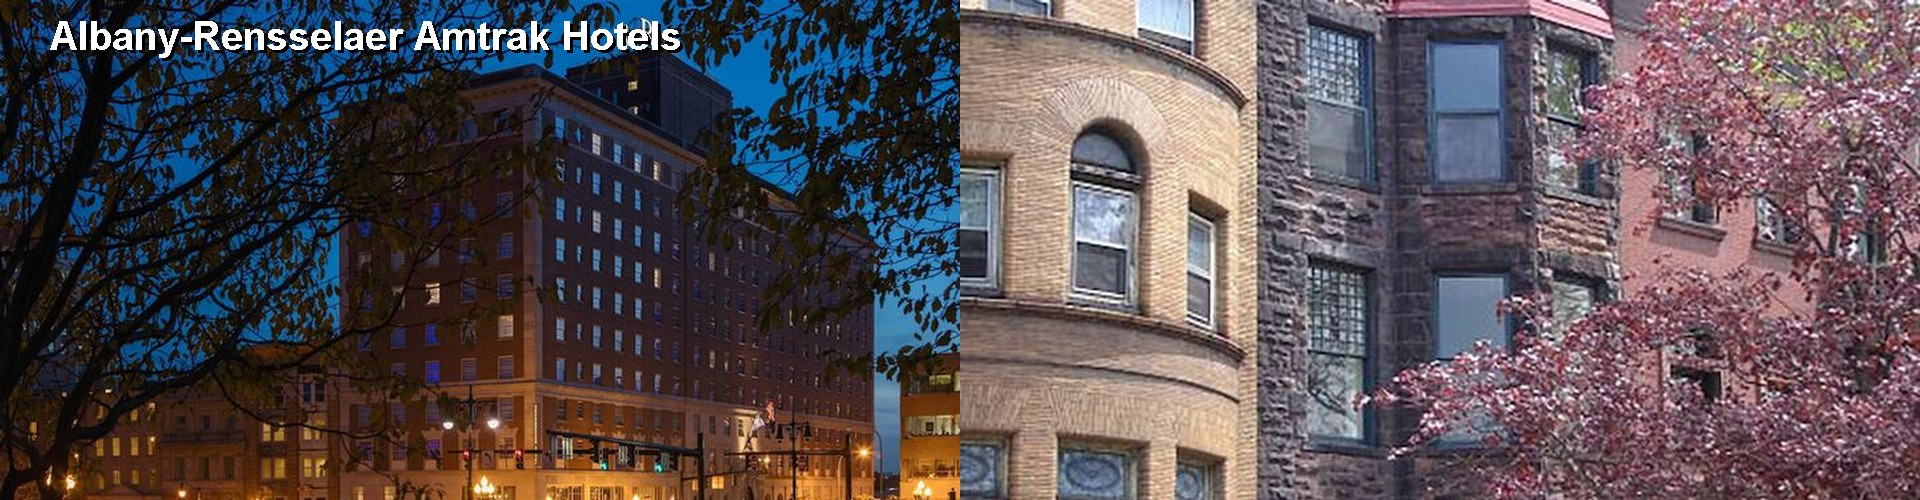 5 Best Hotels near Albany-Rensselaer Amtrak